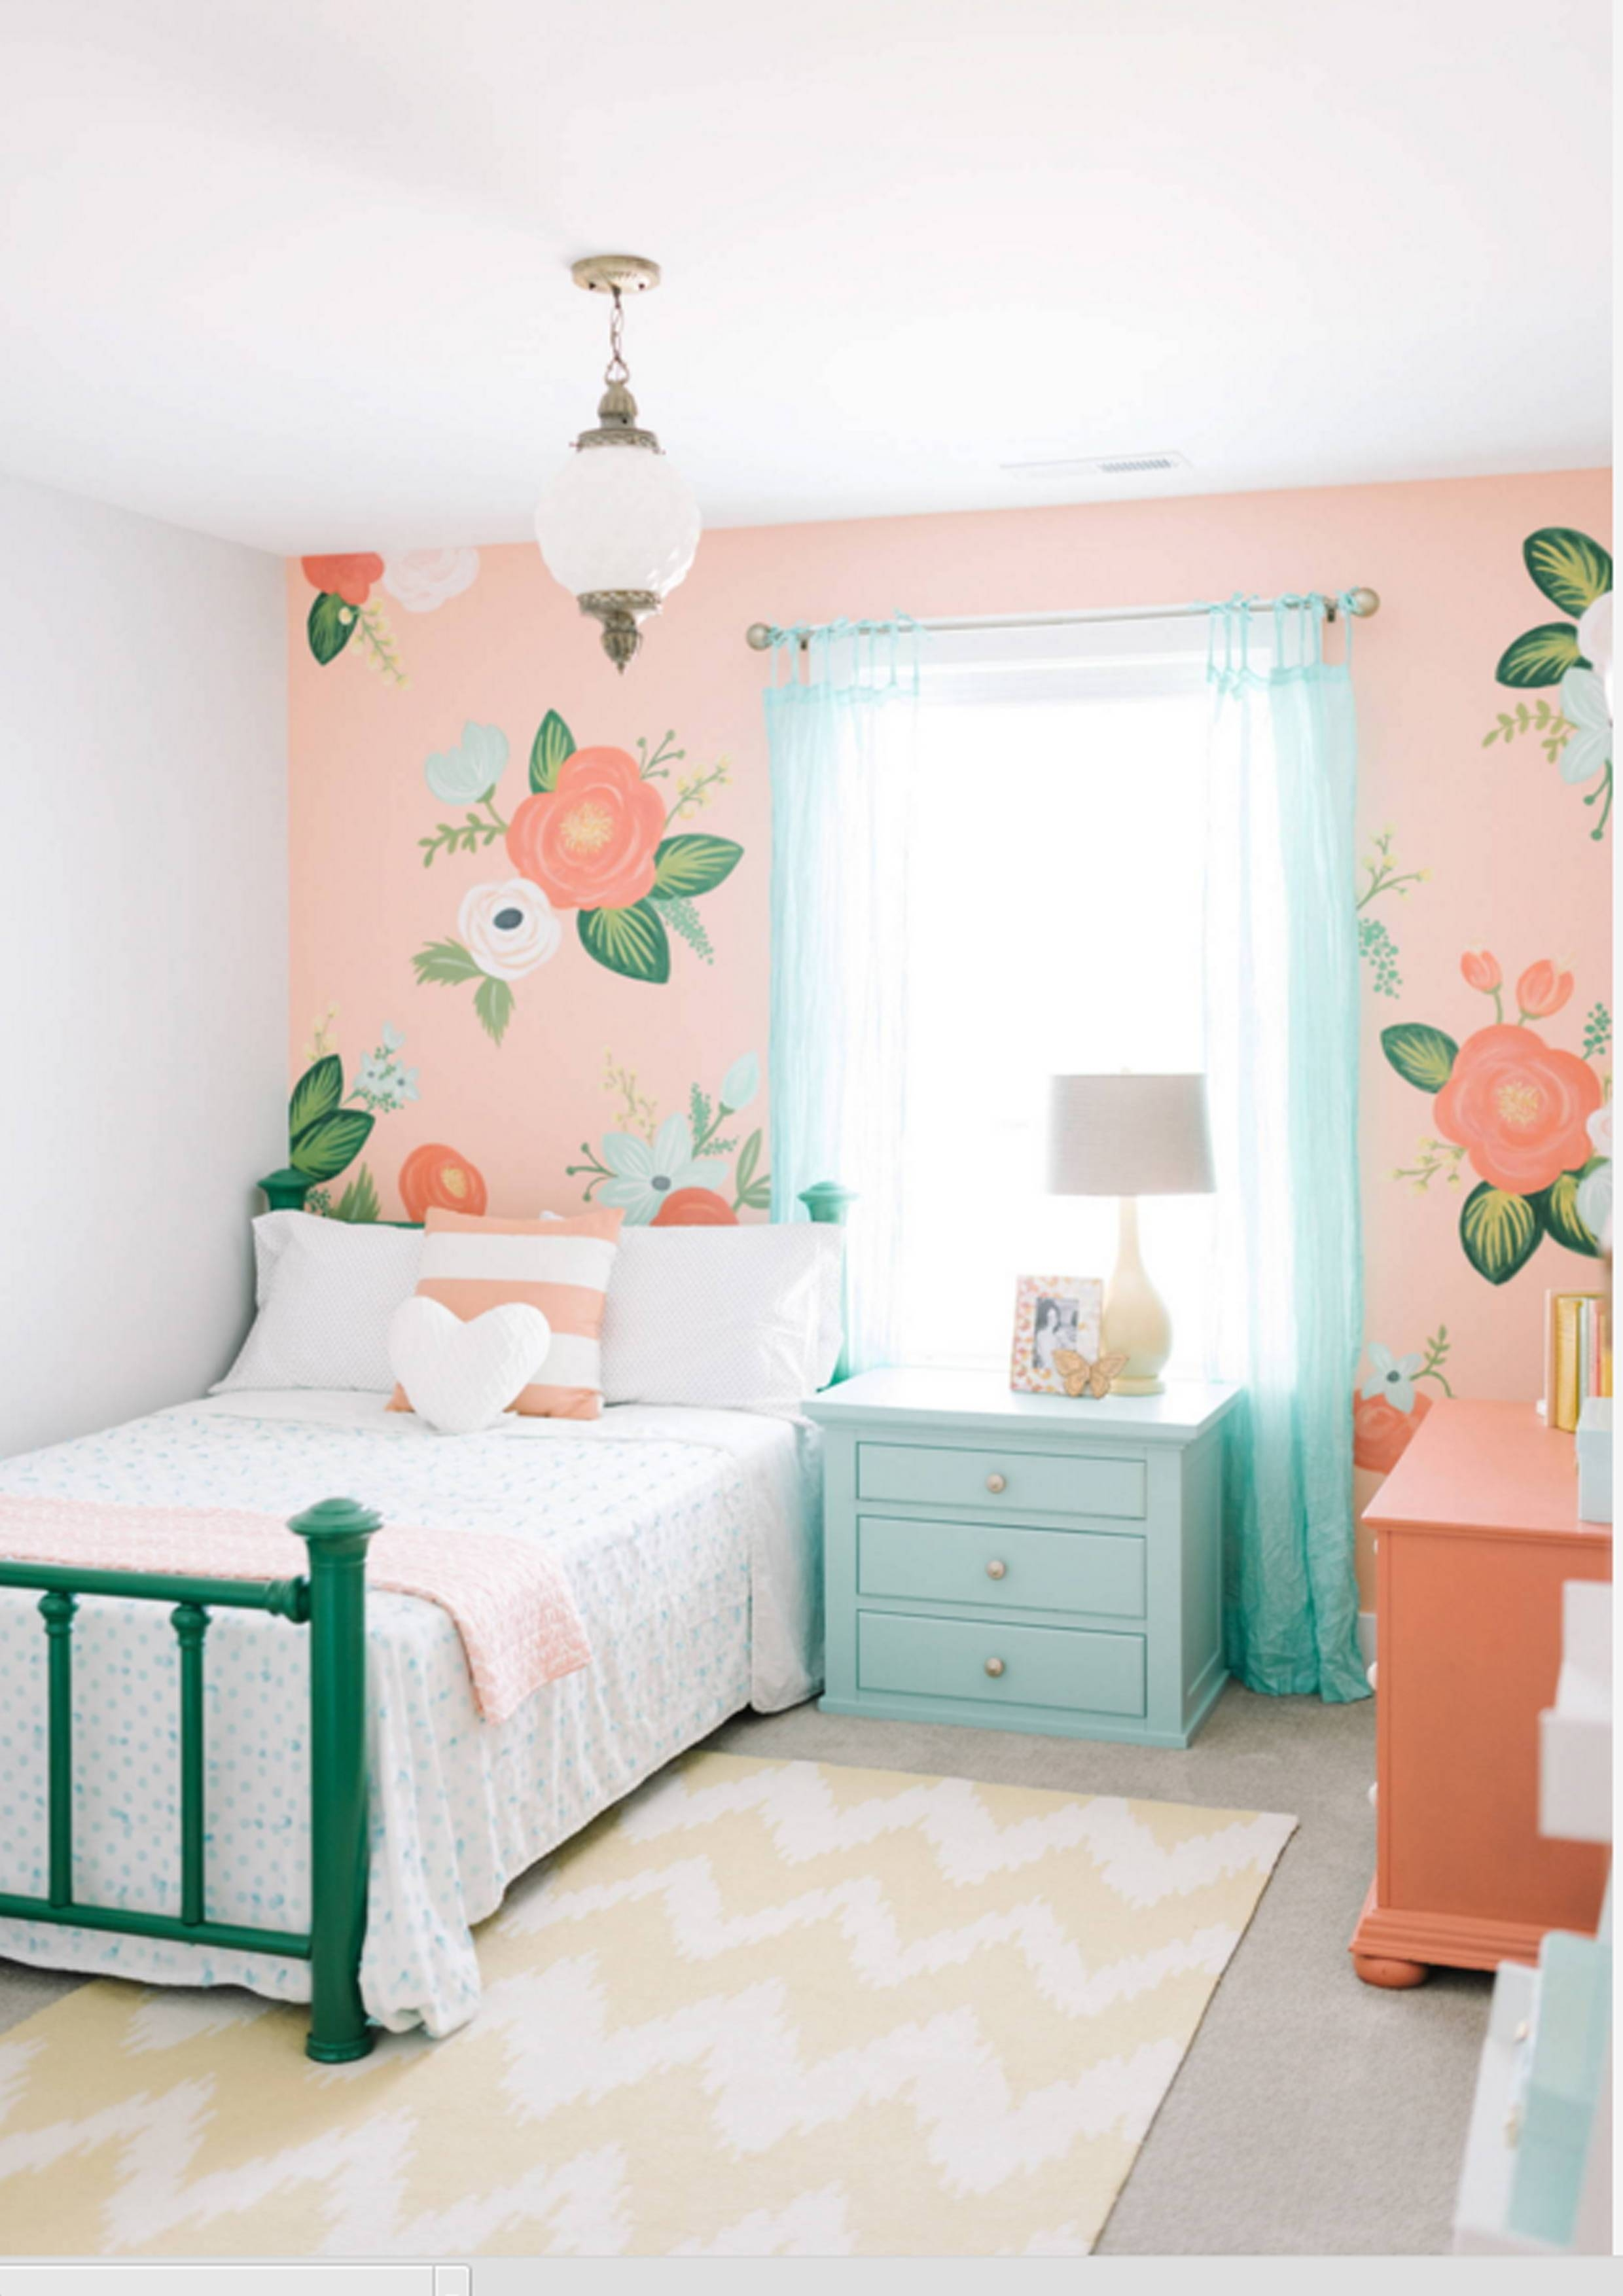 Bedroom : Large Wall Art For Living Room Inspirational Wall Art For Recent Orange And Turquoise Wall Art (View 7 of 20)